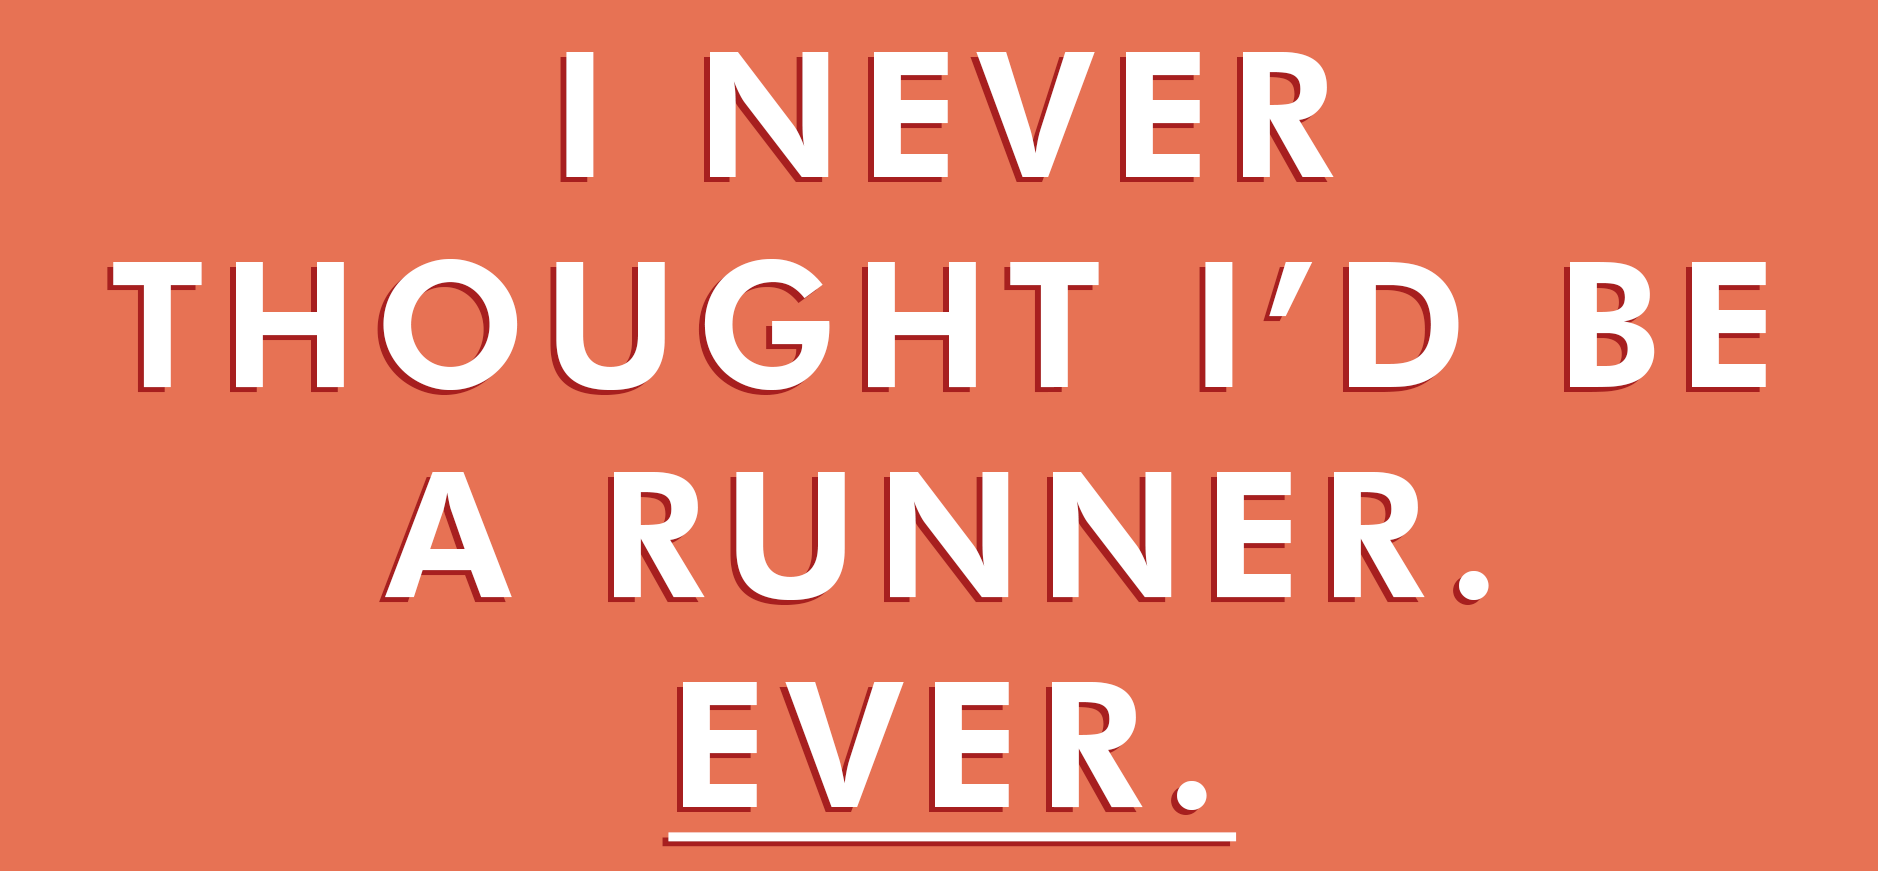 I never thought id be a runner.png